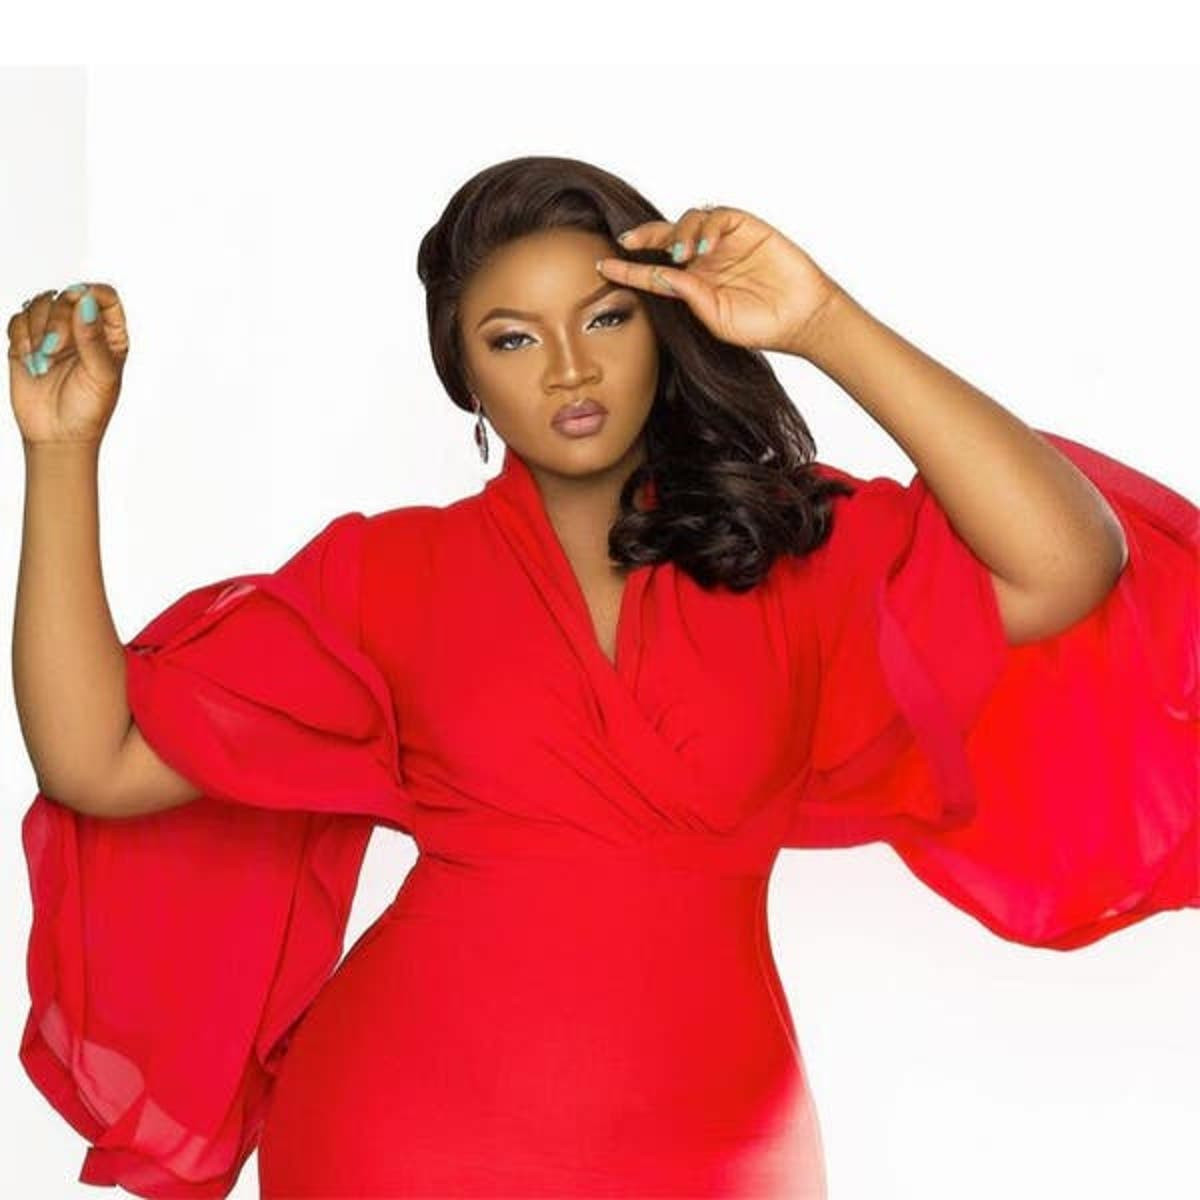 I BECAME A MILLIONAIRE AT THE AGE OF 18 – OMOTOLA JALADE-EKEINDE SPEAKS ON GETTING MARRIED AT AN EARLY AGE(PHOTOS)